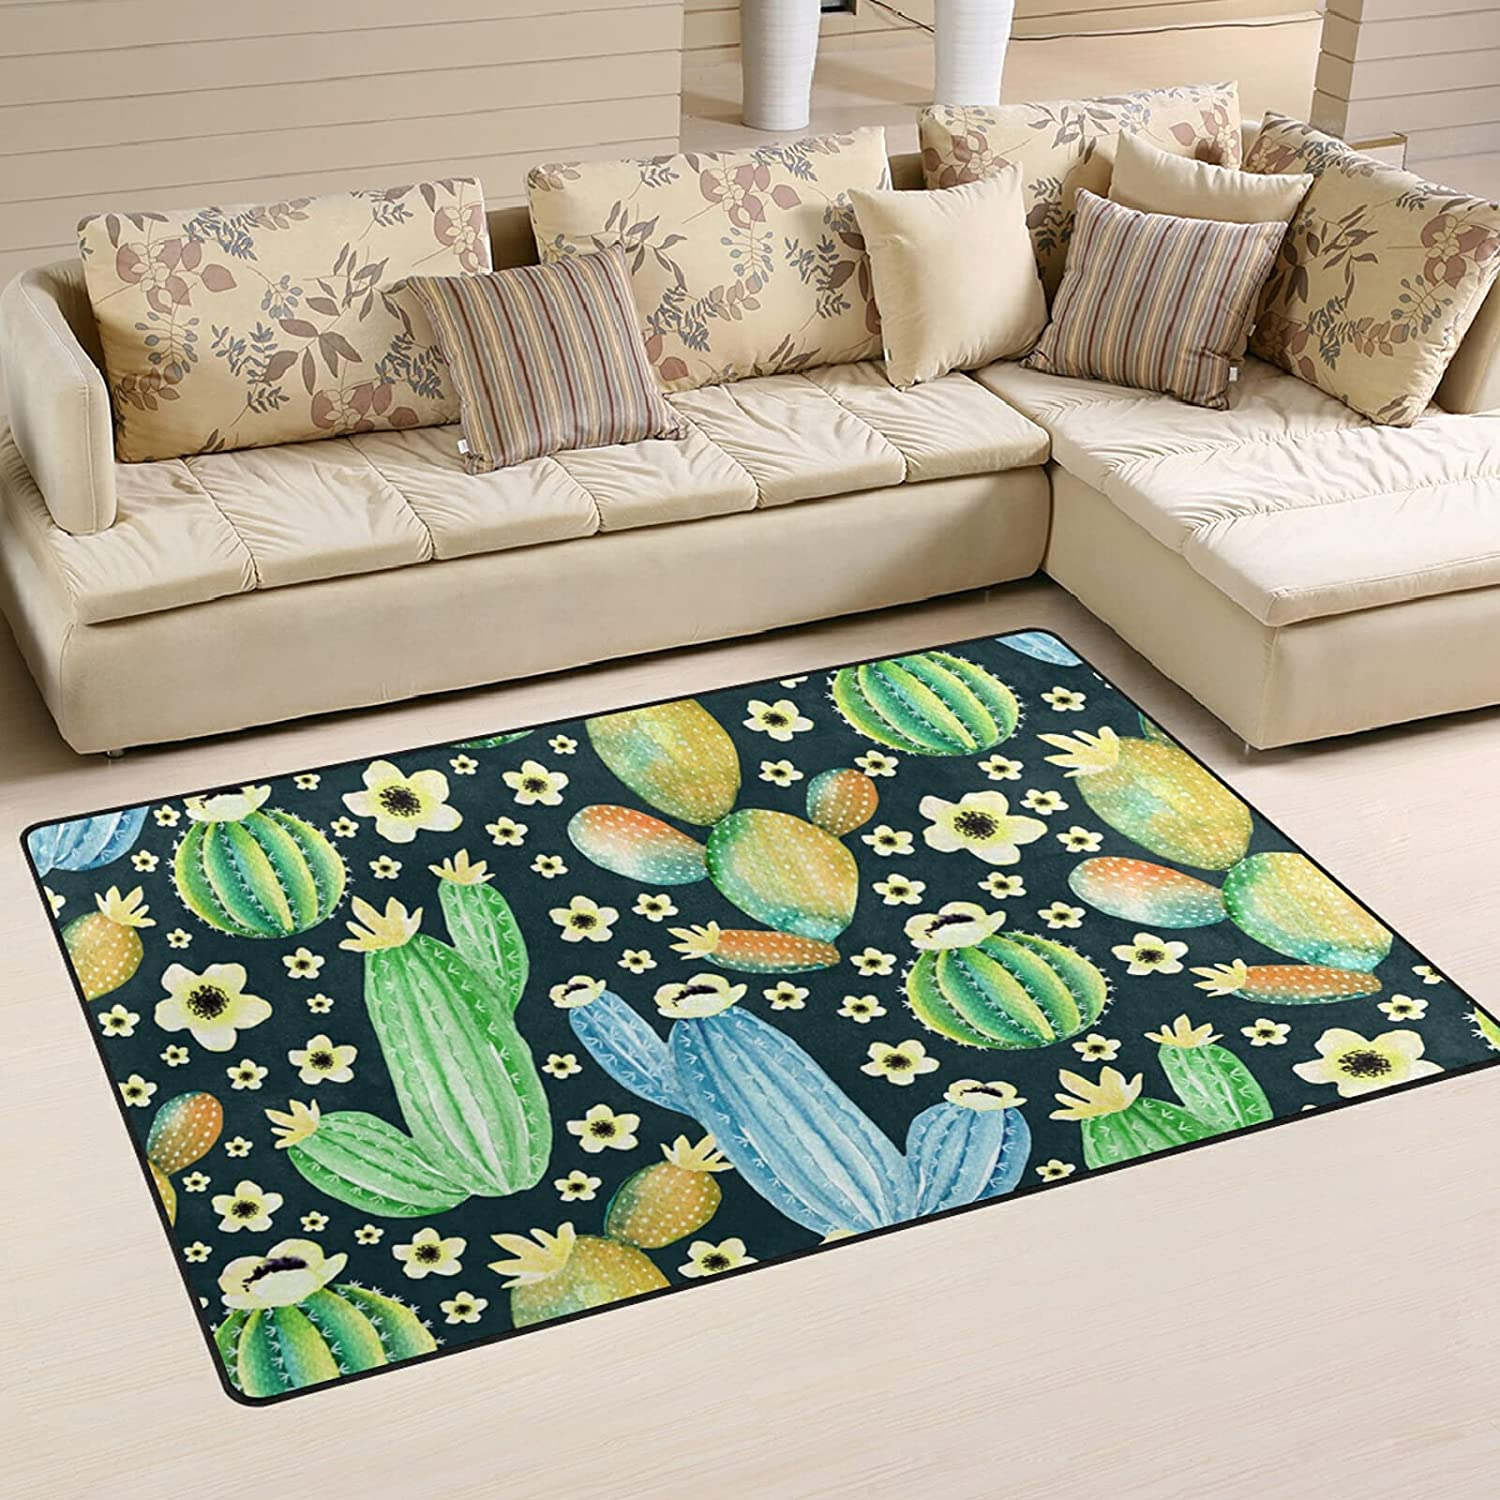 Flower Cactus Large Soft Area Rugs Award K Rug Playmat for Challenge the lowest price of Japan ☆ Nursery Mat